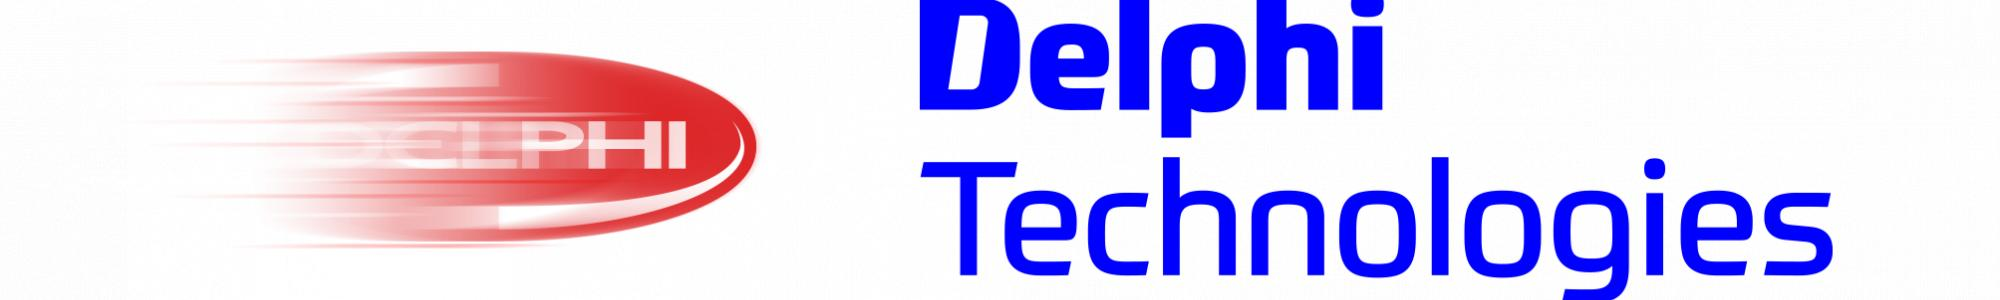 Delphi Technologies Transition Logo